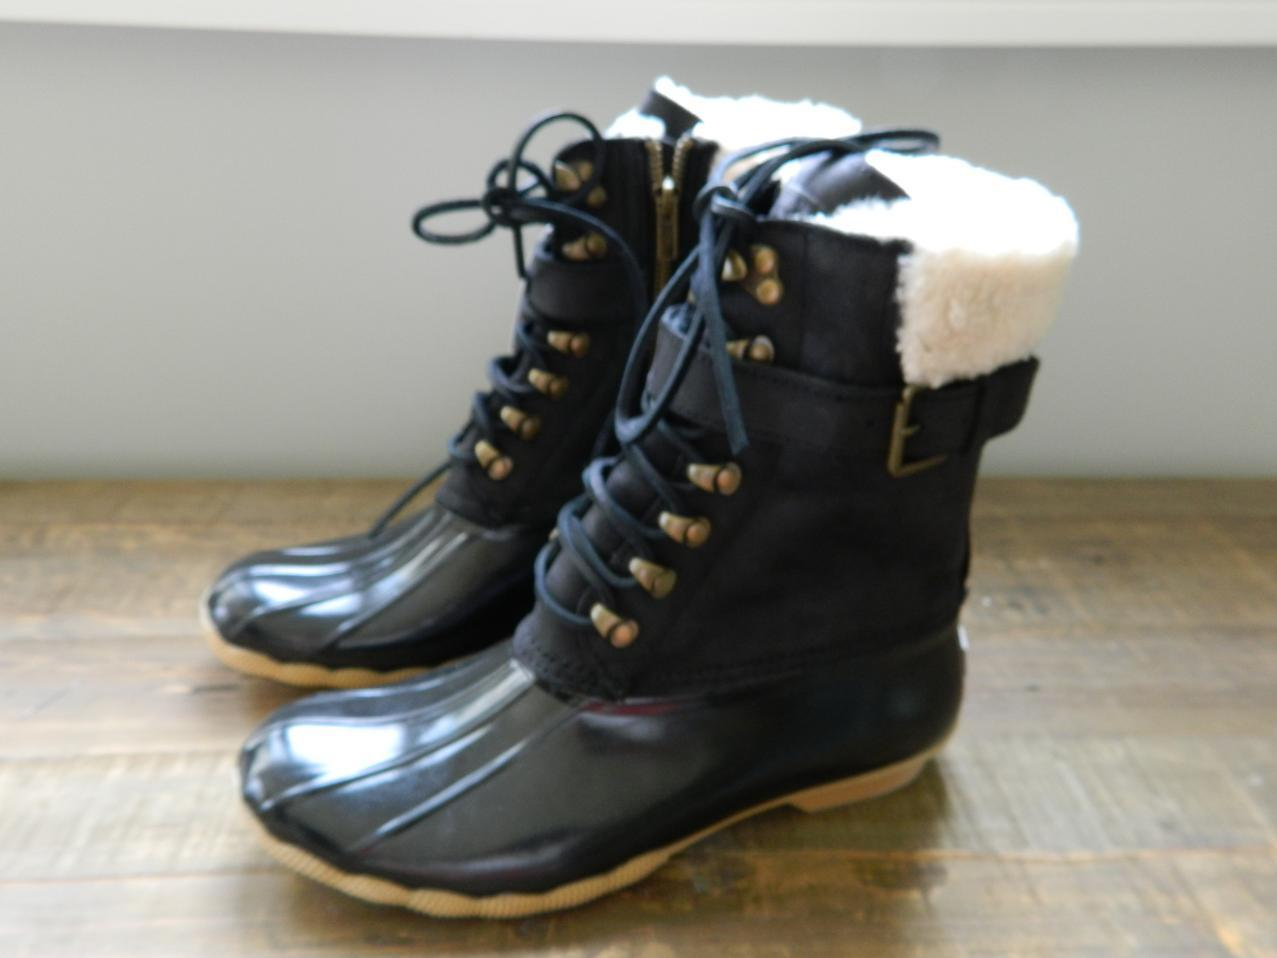 sperry top sider leather shearwater boots buckle b4254 6